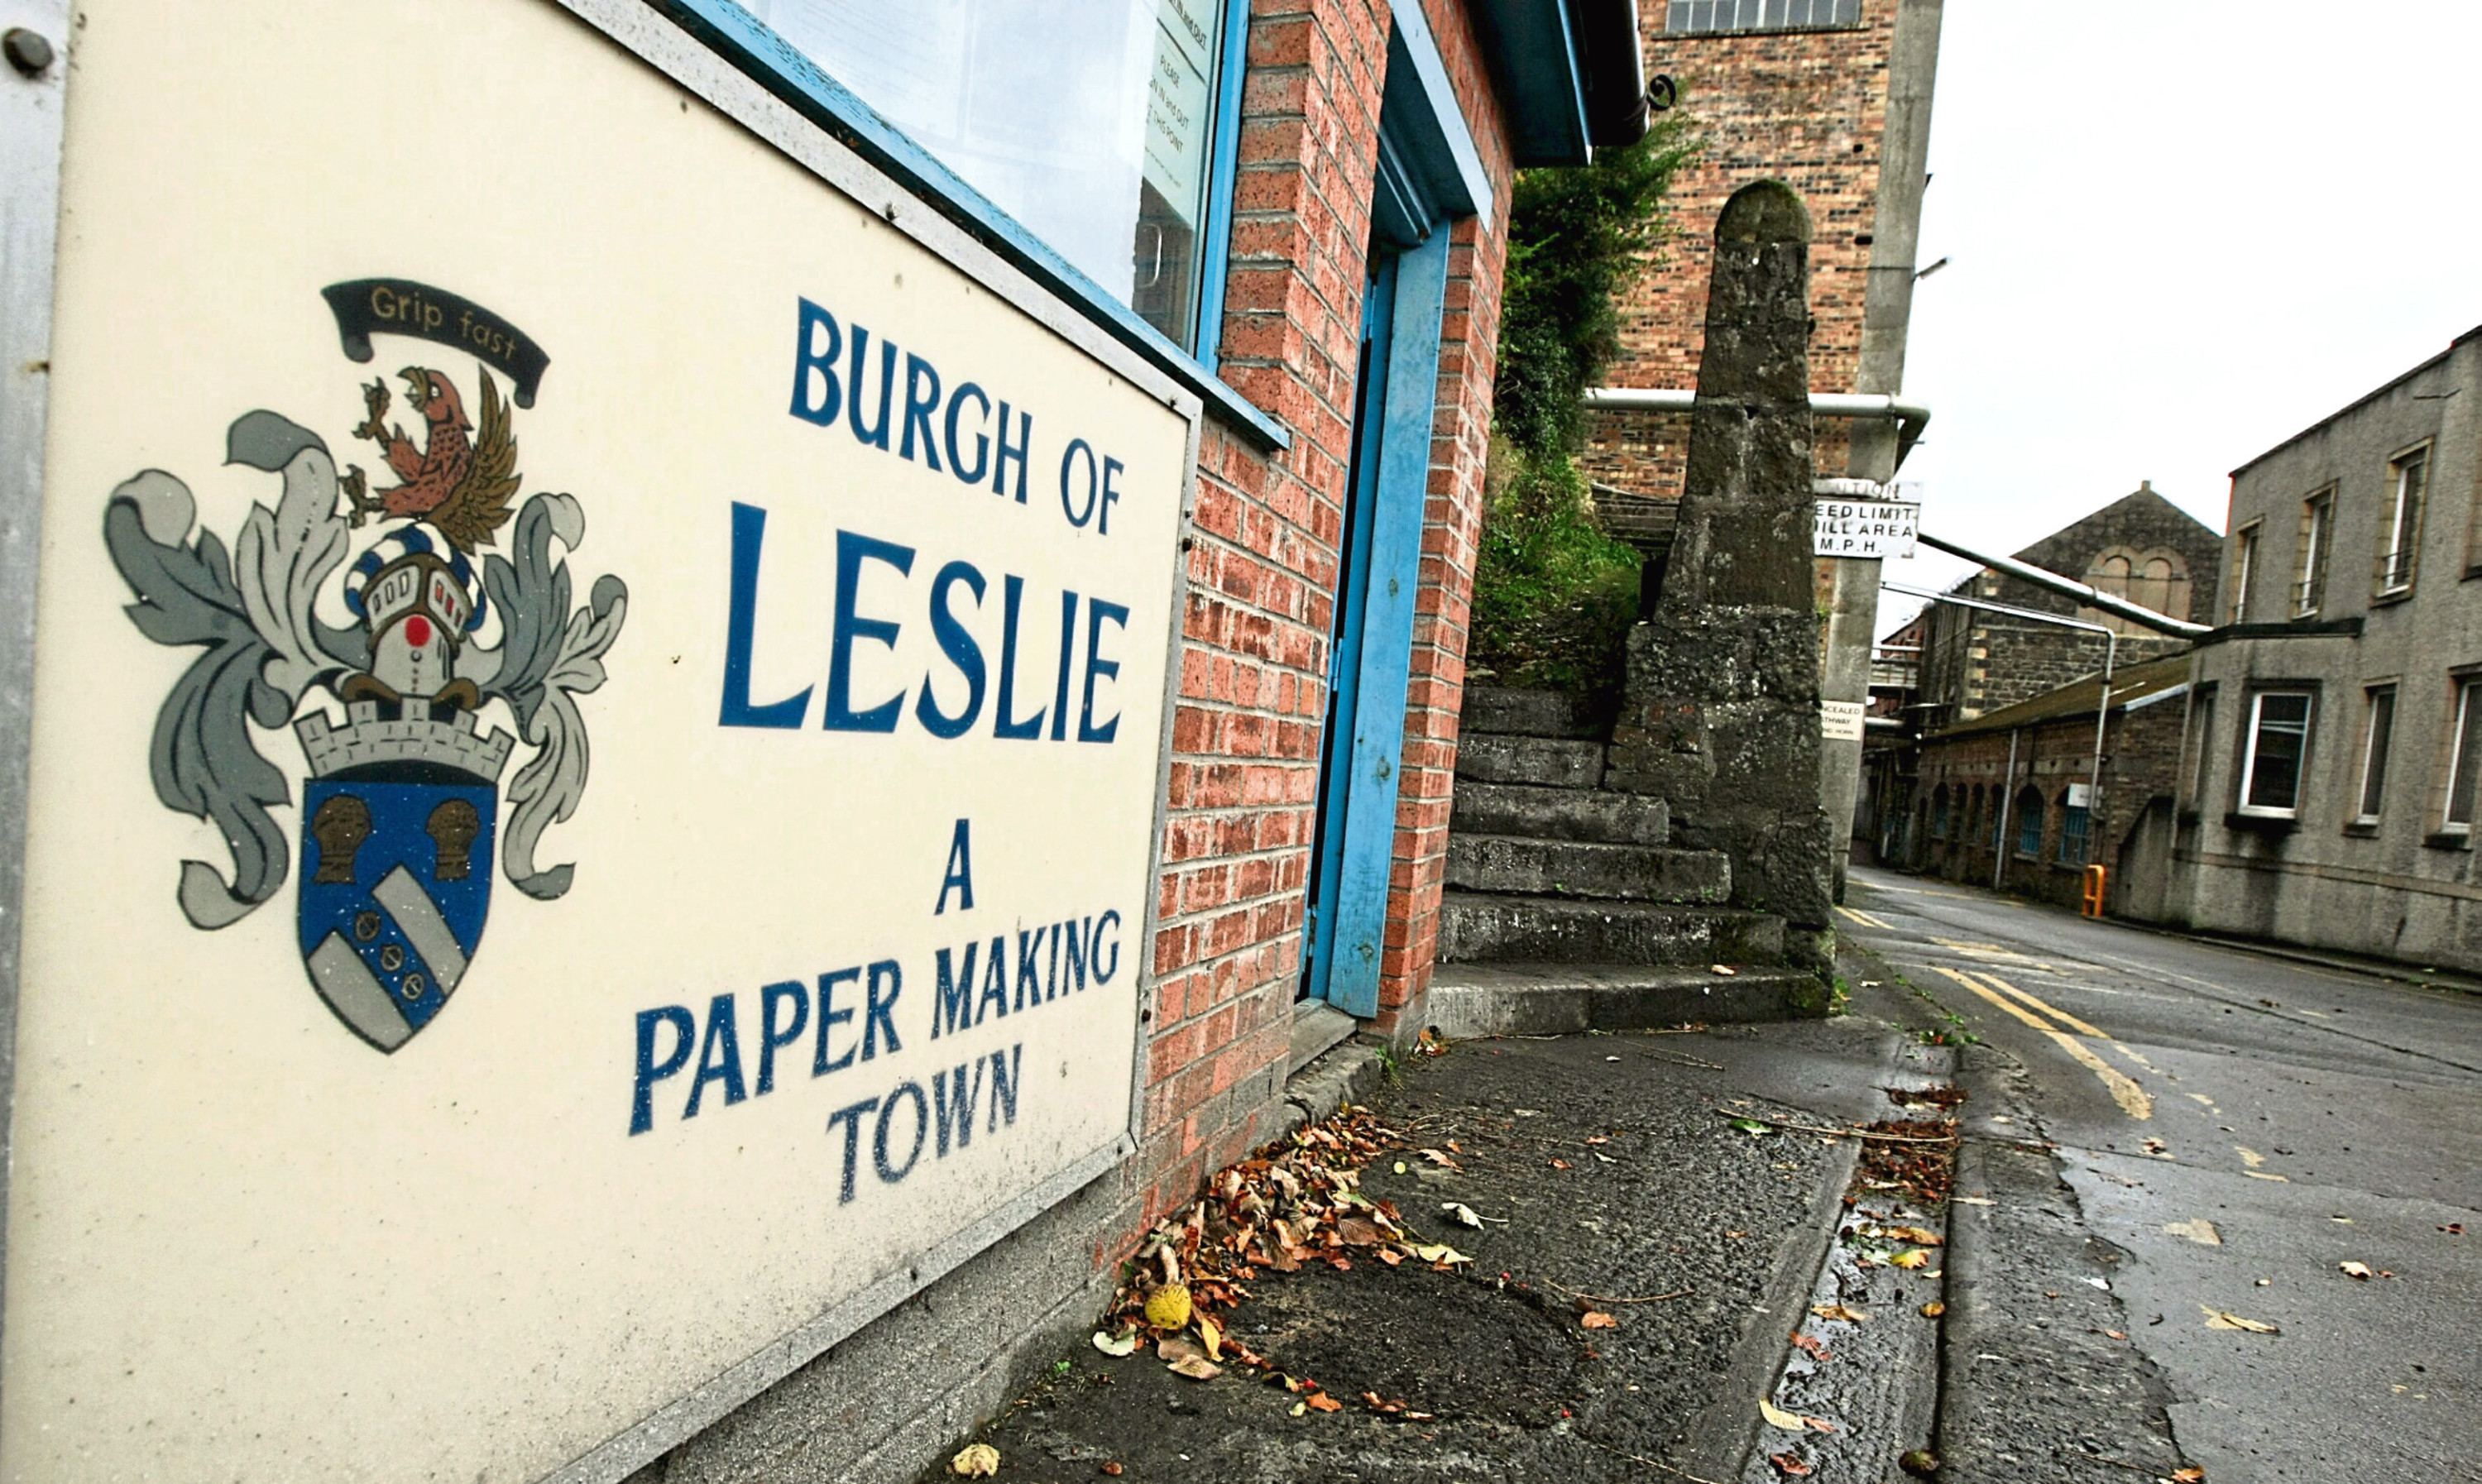 The entrance to the Sapphire mill in Leslie, which is operated by Fourstones Paper Mill. Picture: Dougie Nicolson.